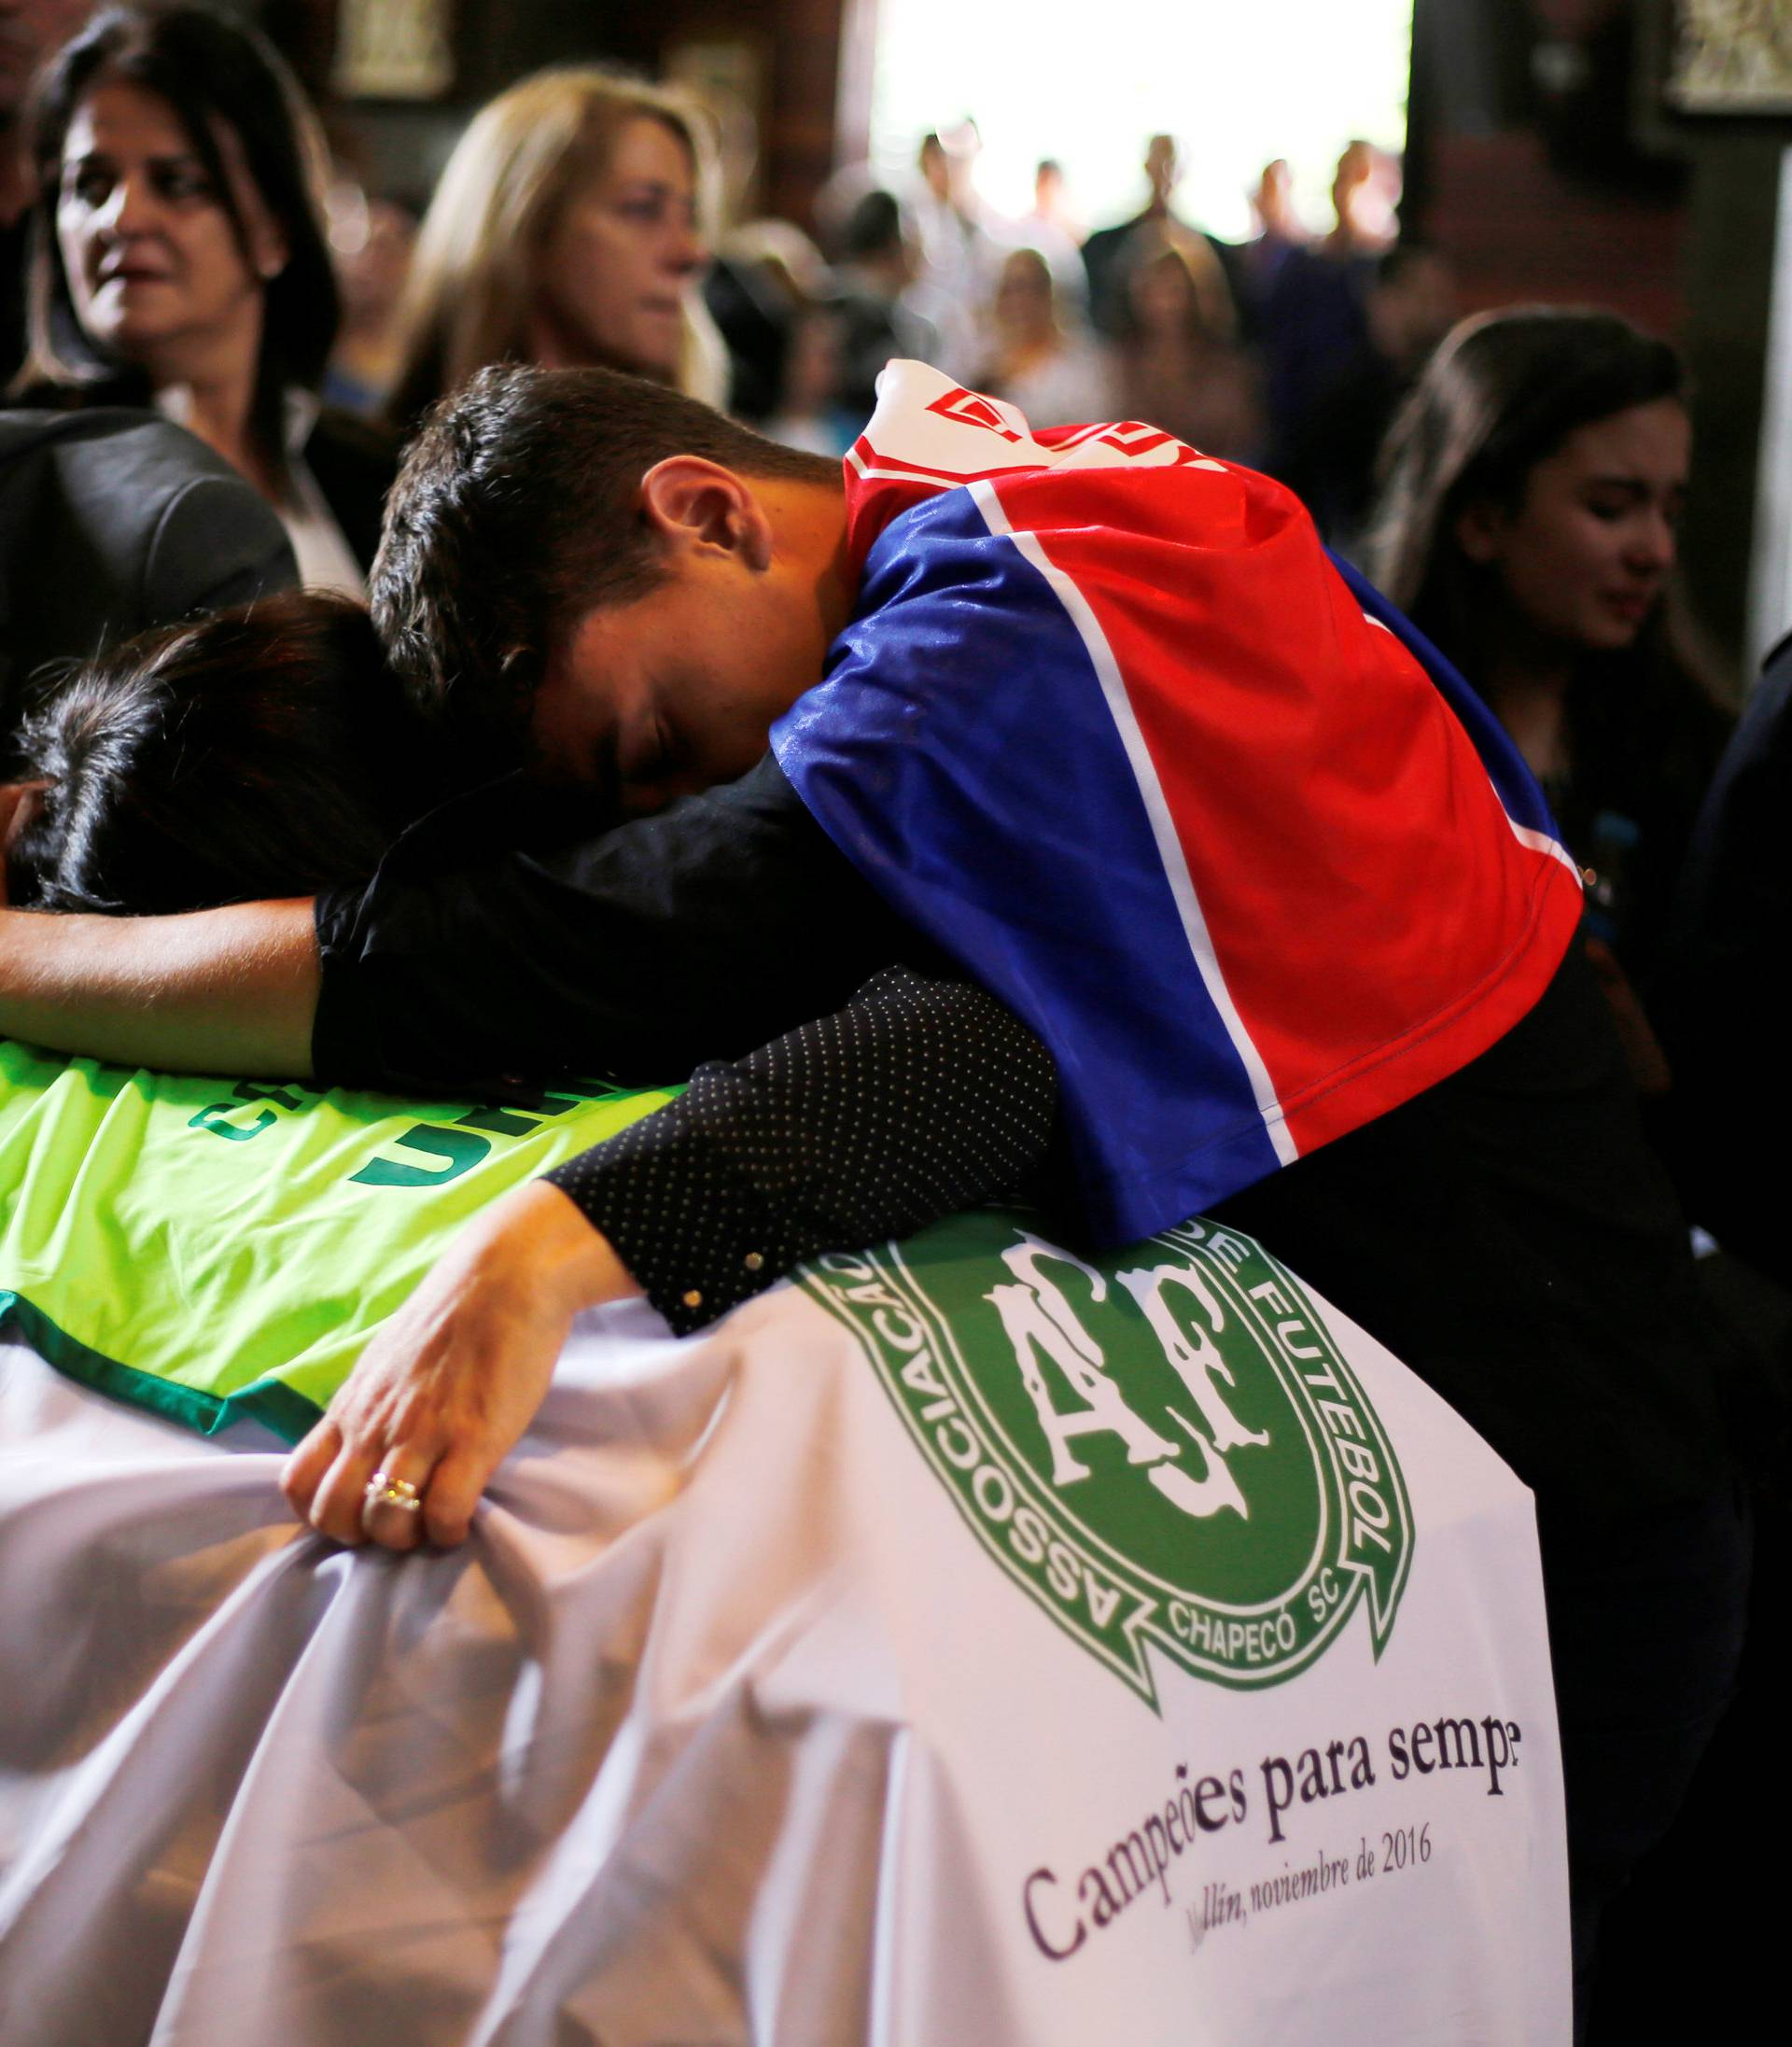 Relatives of Chapecoense soccer club head coach Caio Junior, who died in the plane crash in Colombia, participate in a ceremony to pay tribute to him in Curitiba